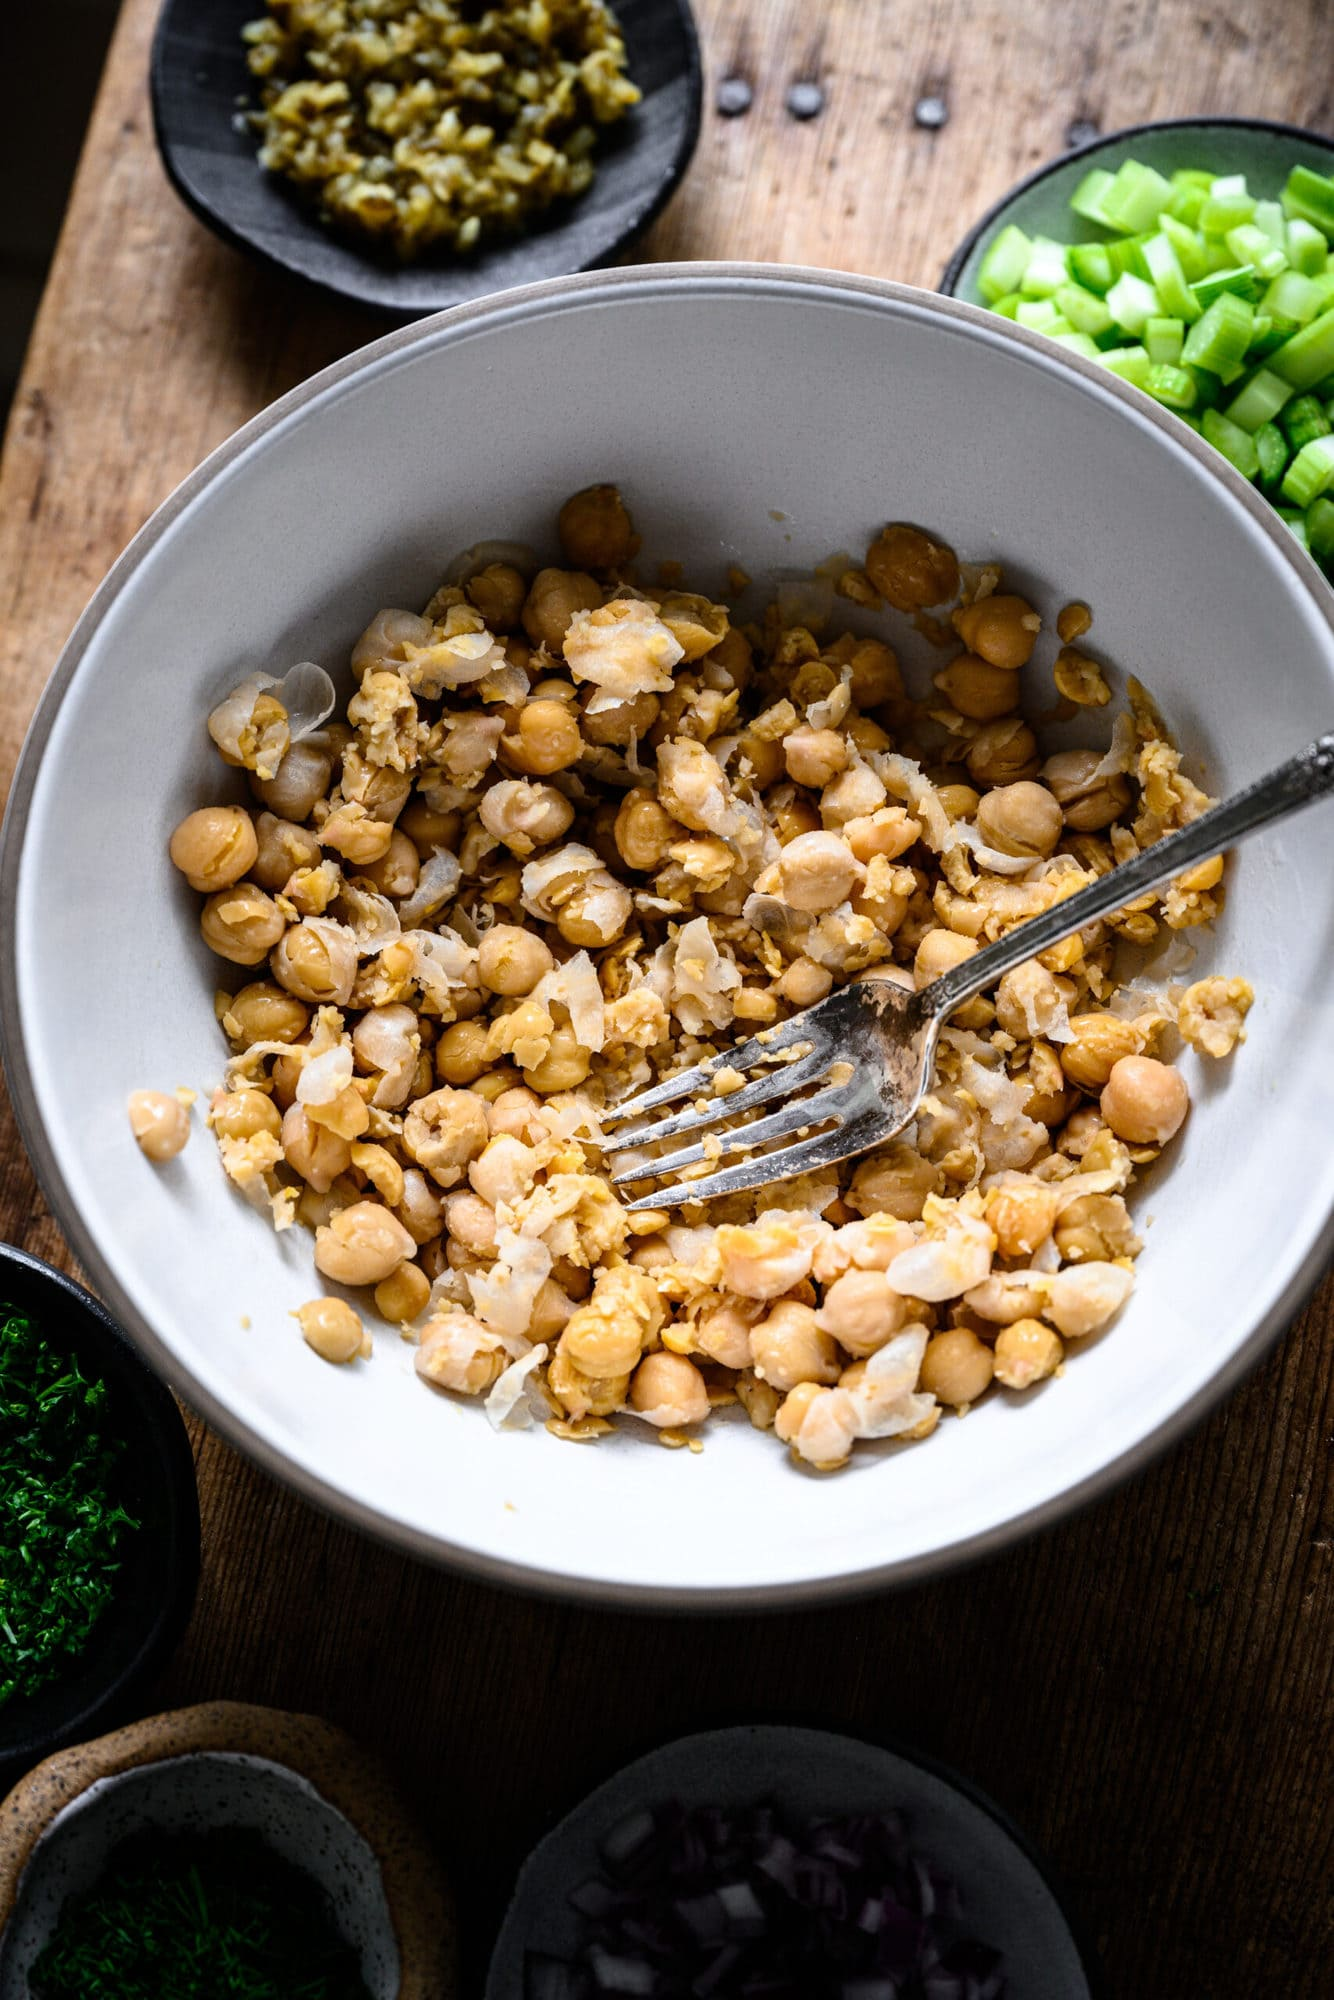 close up view of mashed chickpeas in a bowl with a fork.